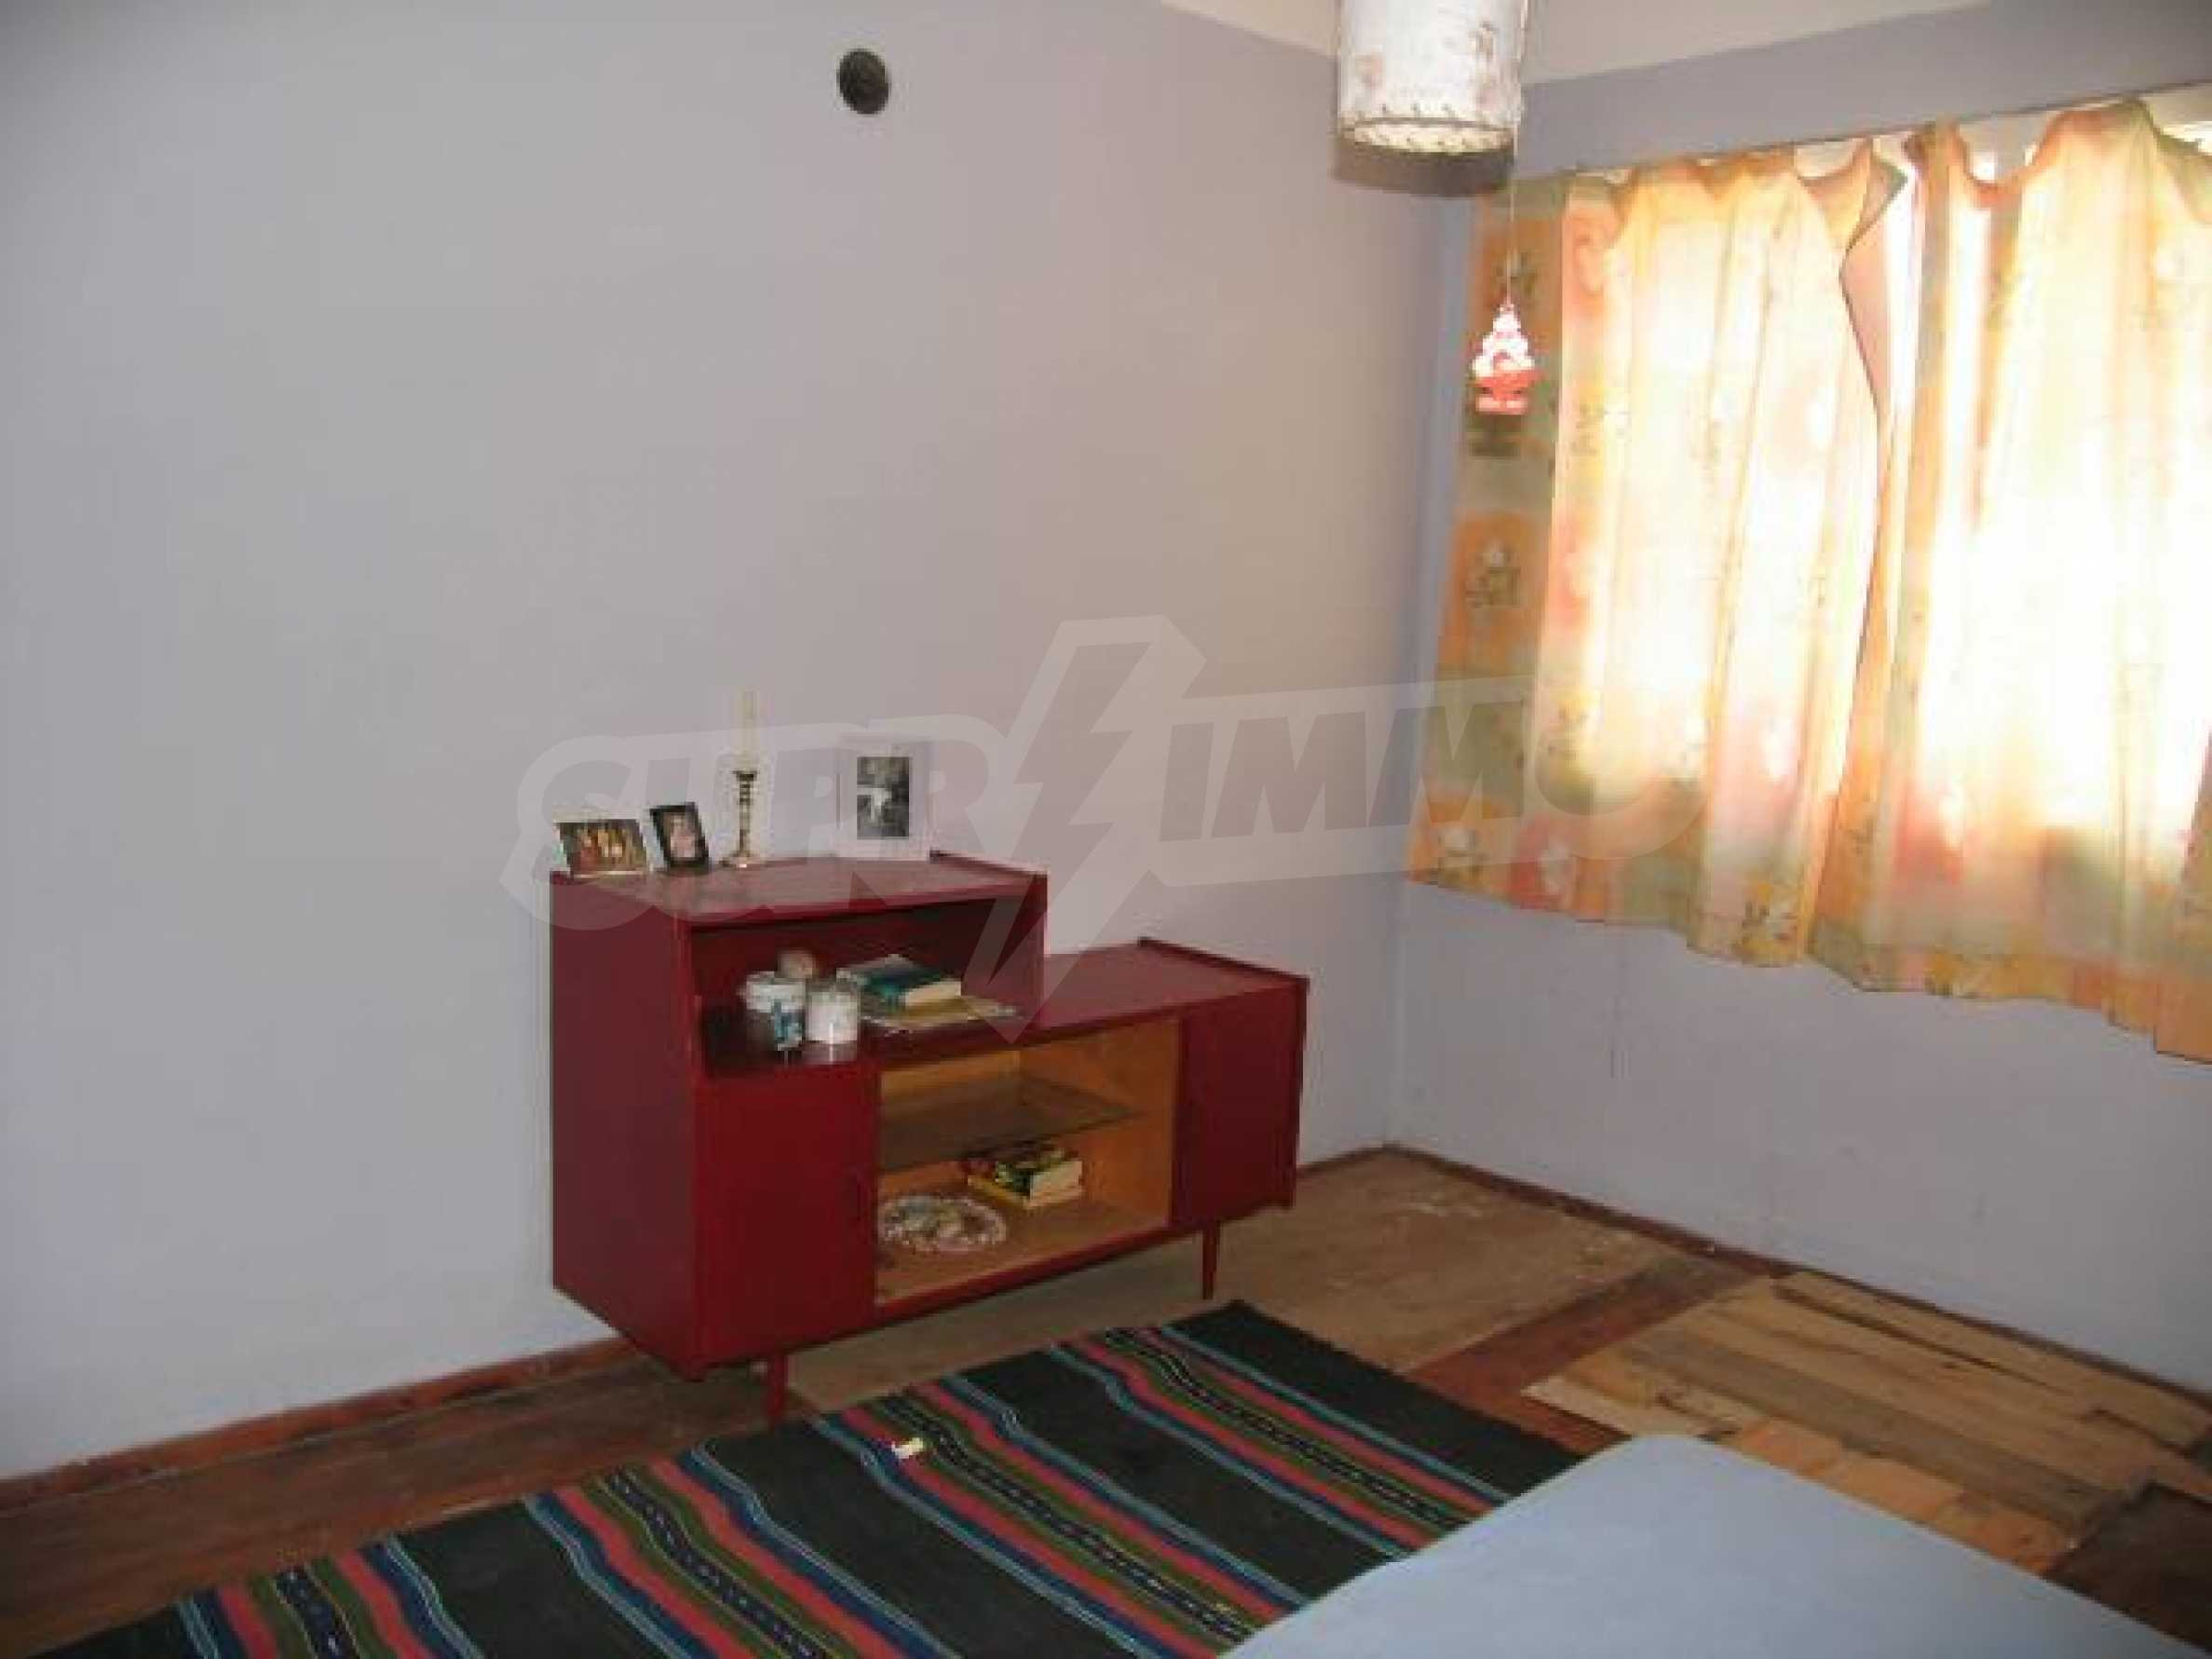 House for sale in Byala resort - just a few minutes from the sea 15